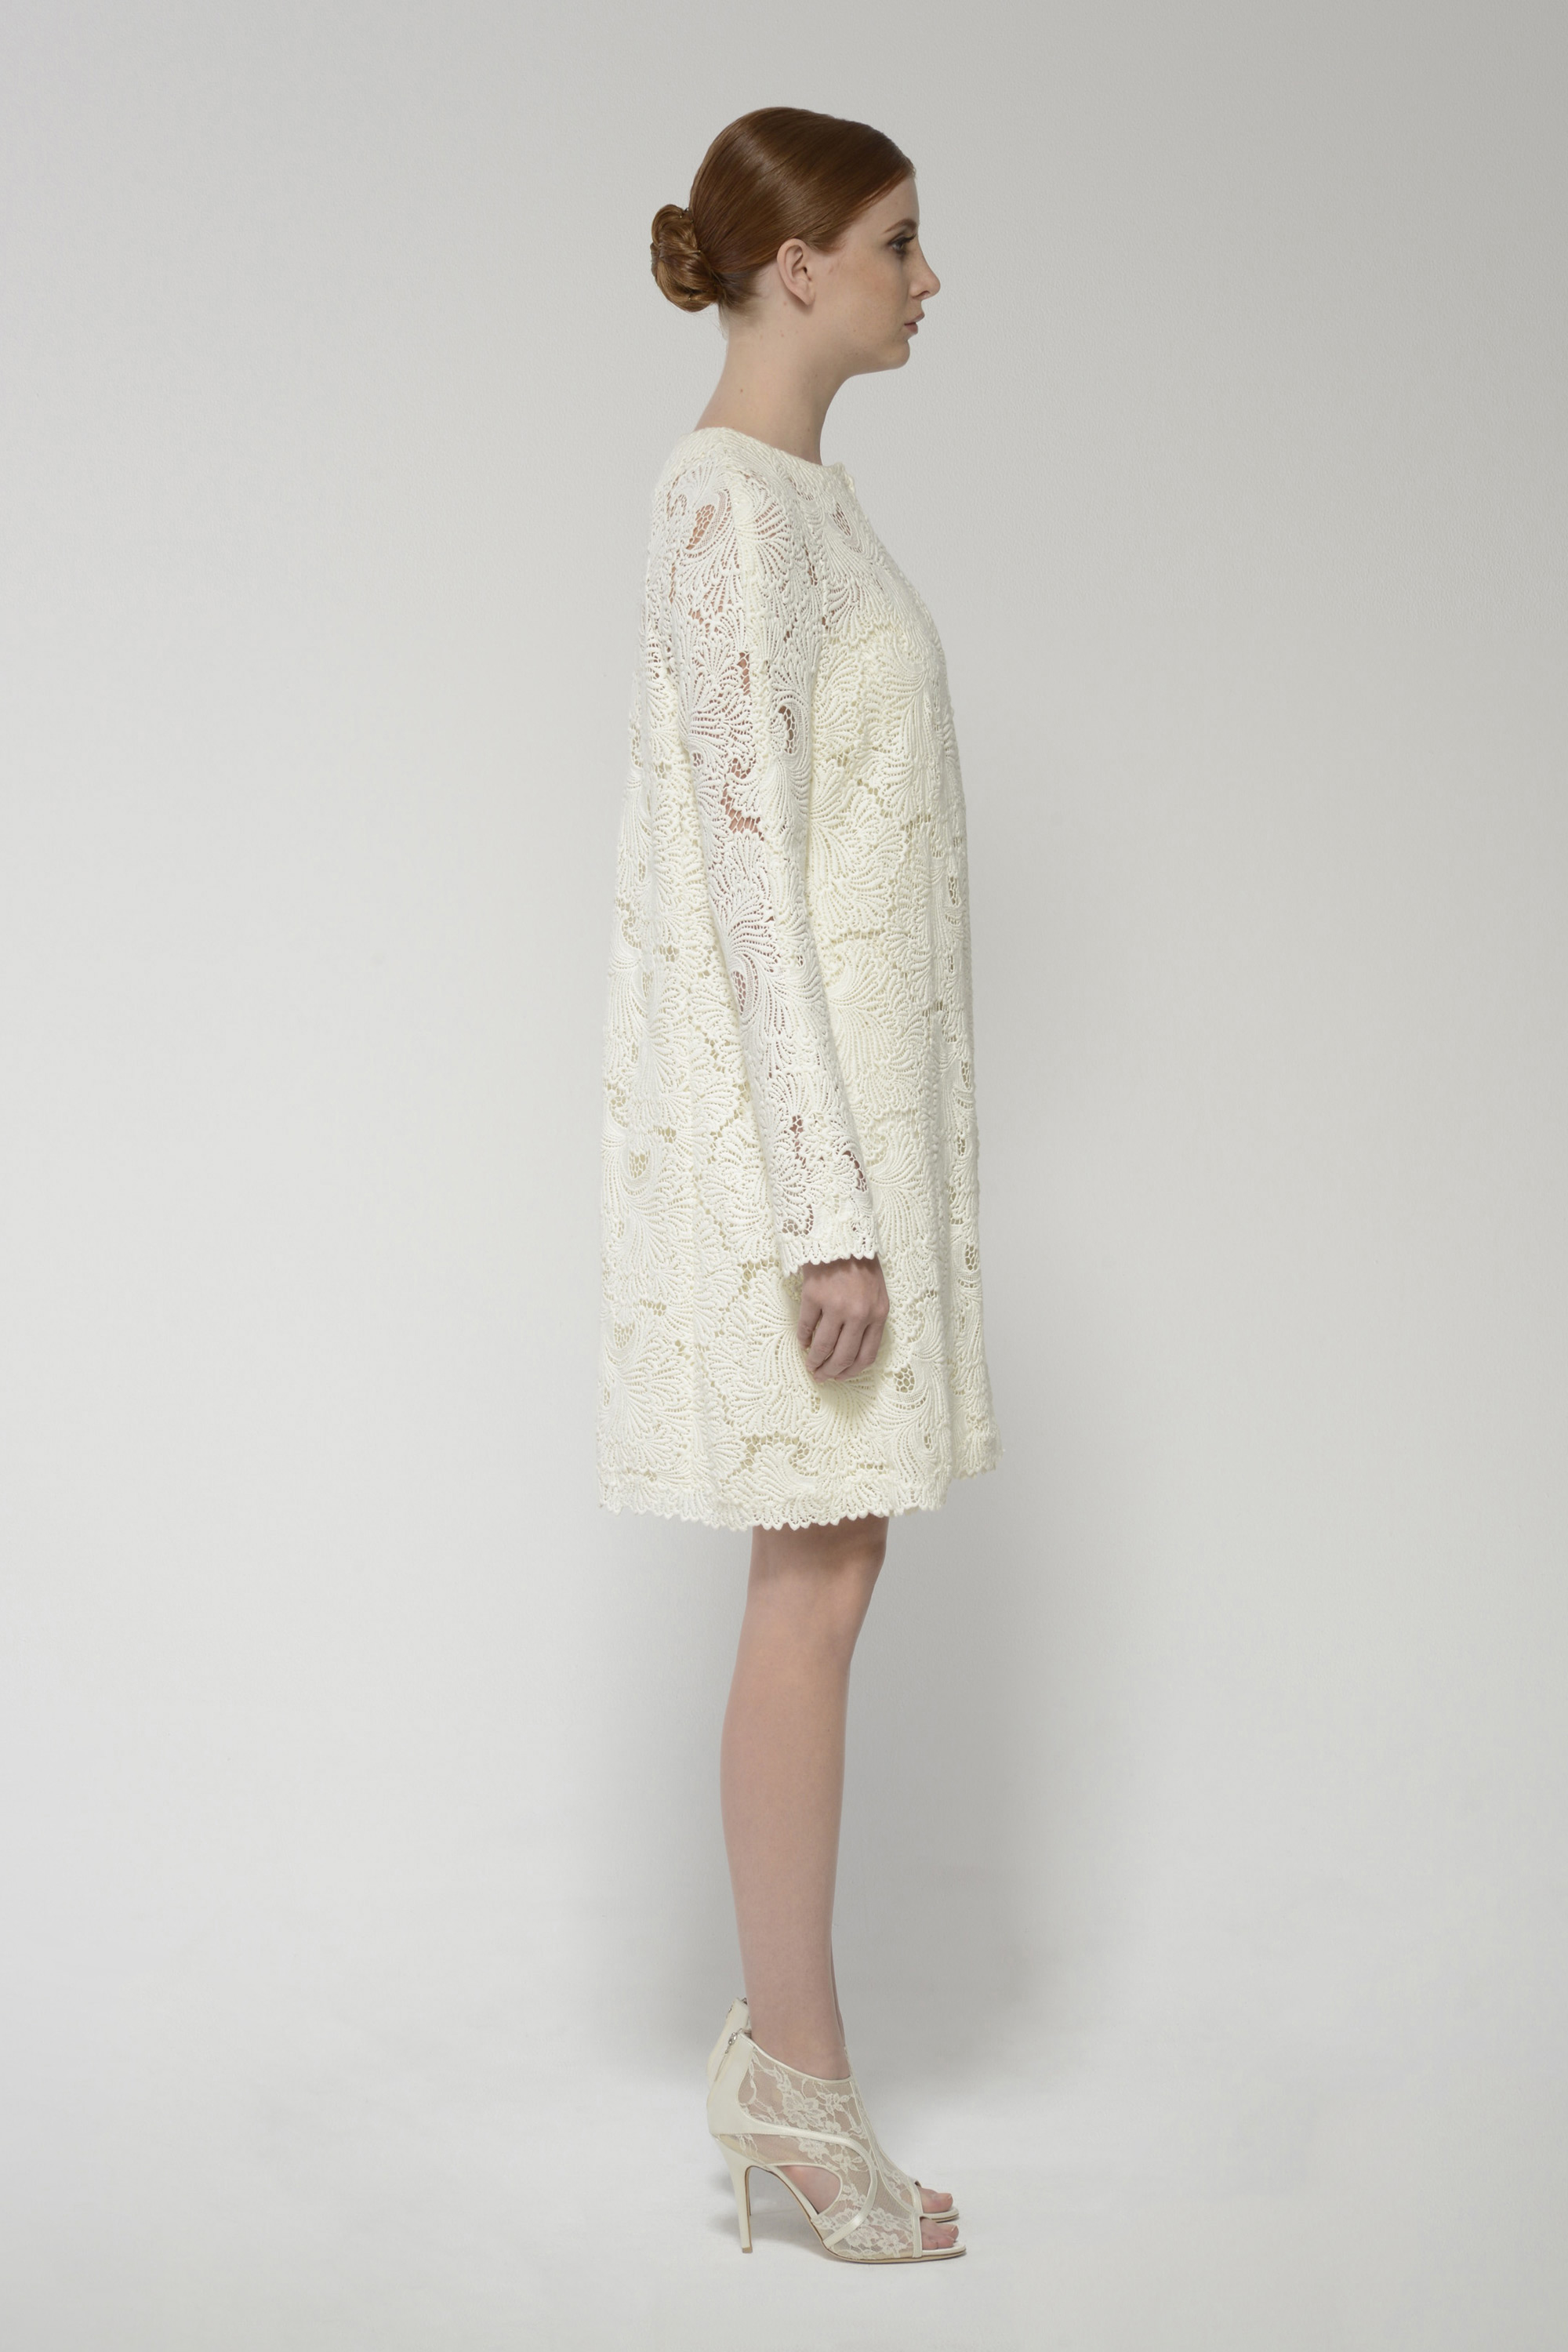 Andiecoat ivory left 1